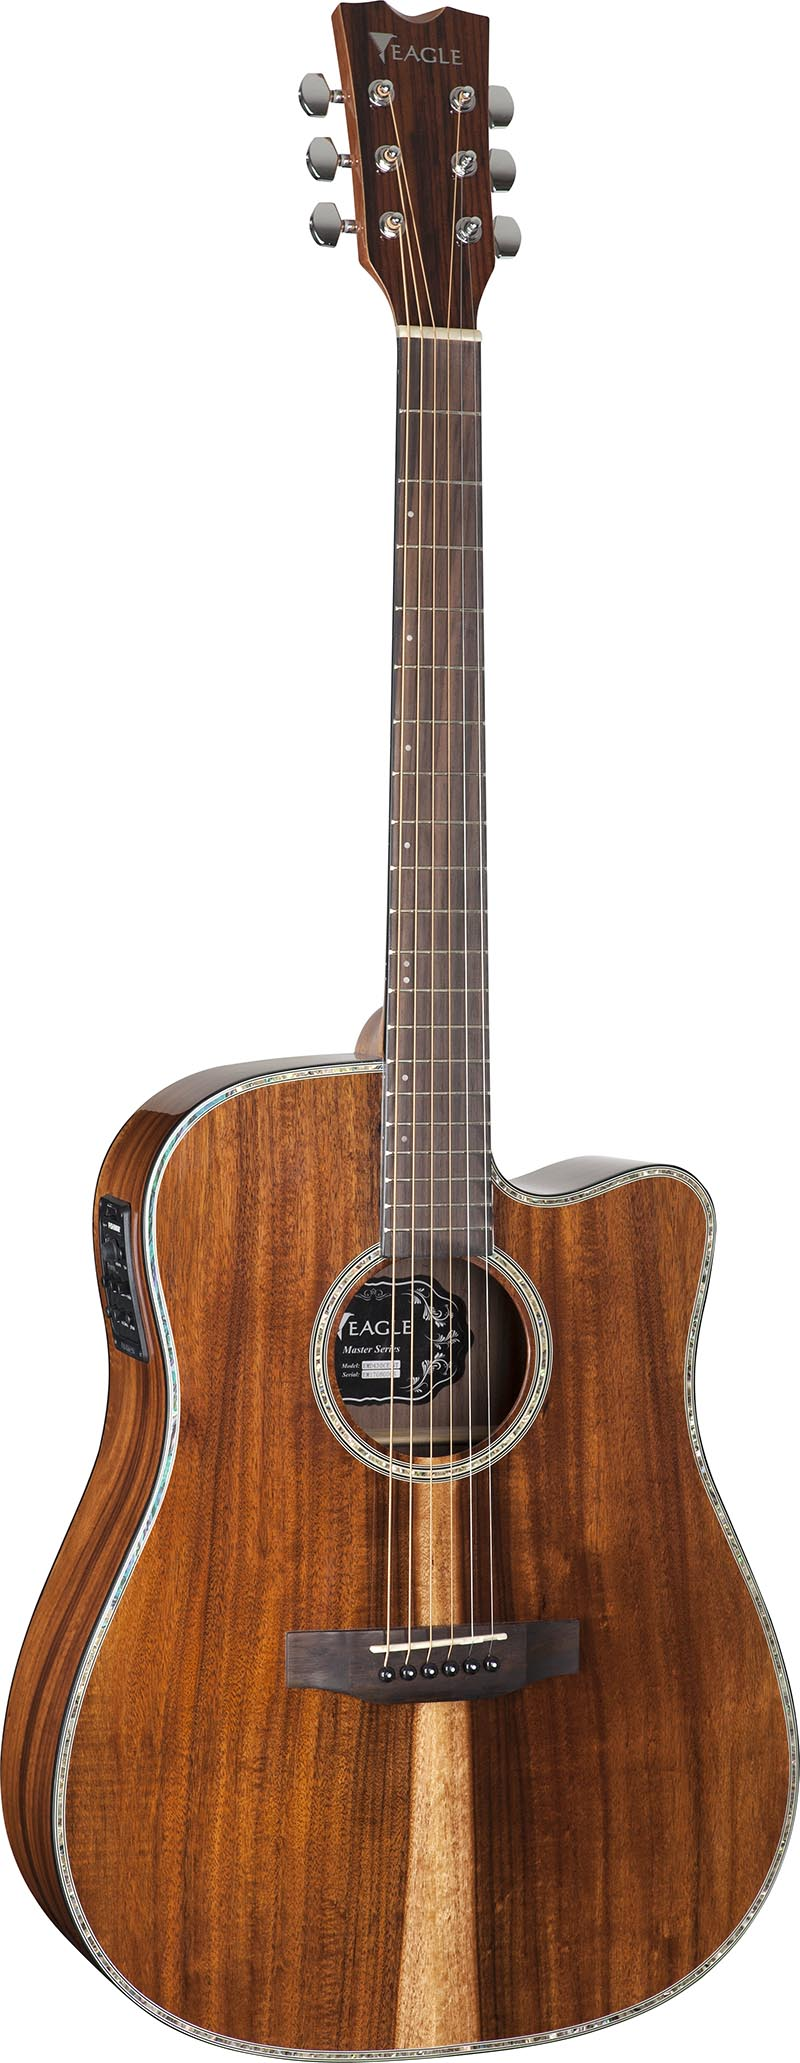 emd430ce violao folk dreadnought tampo solido eagle emd430ce nt natural visao frontal vertical